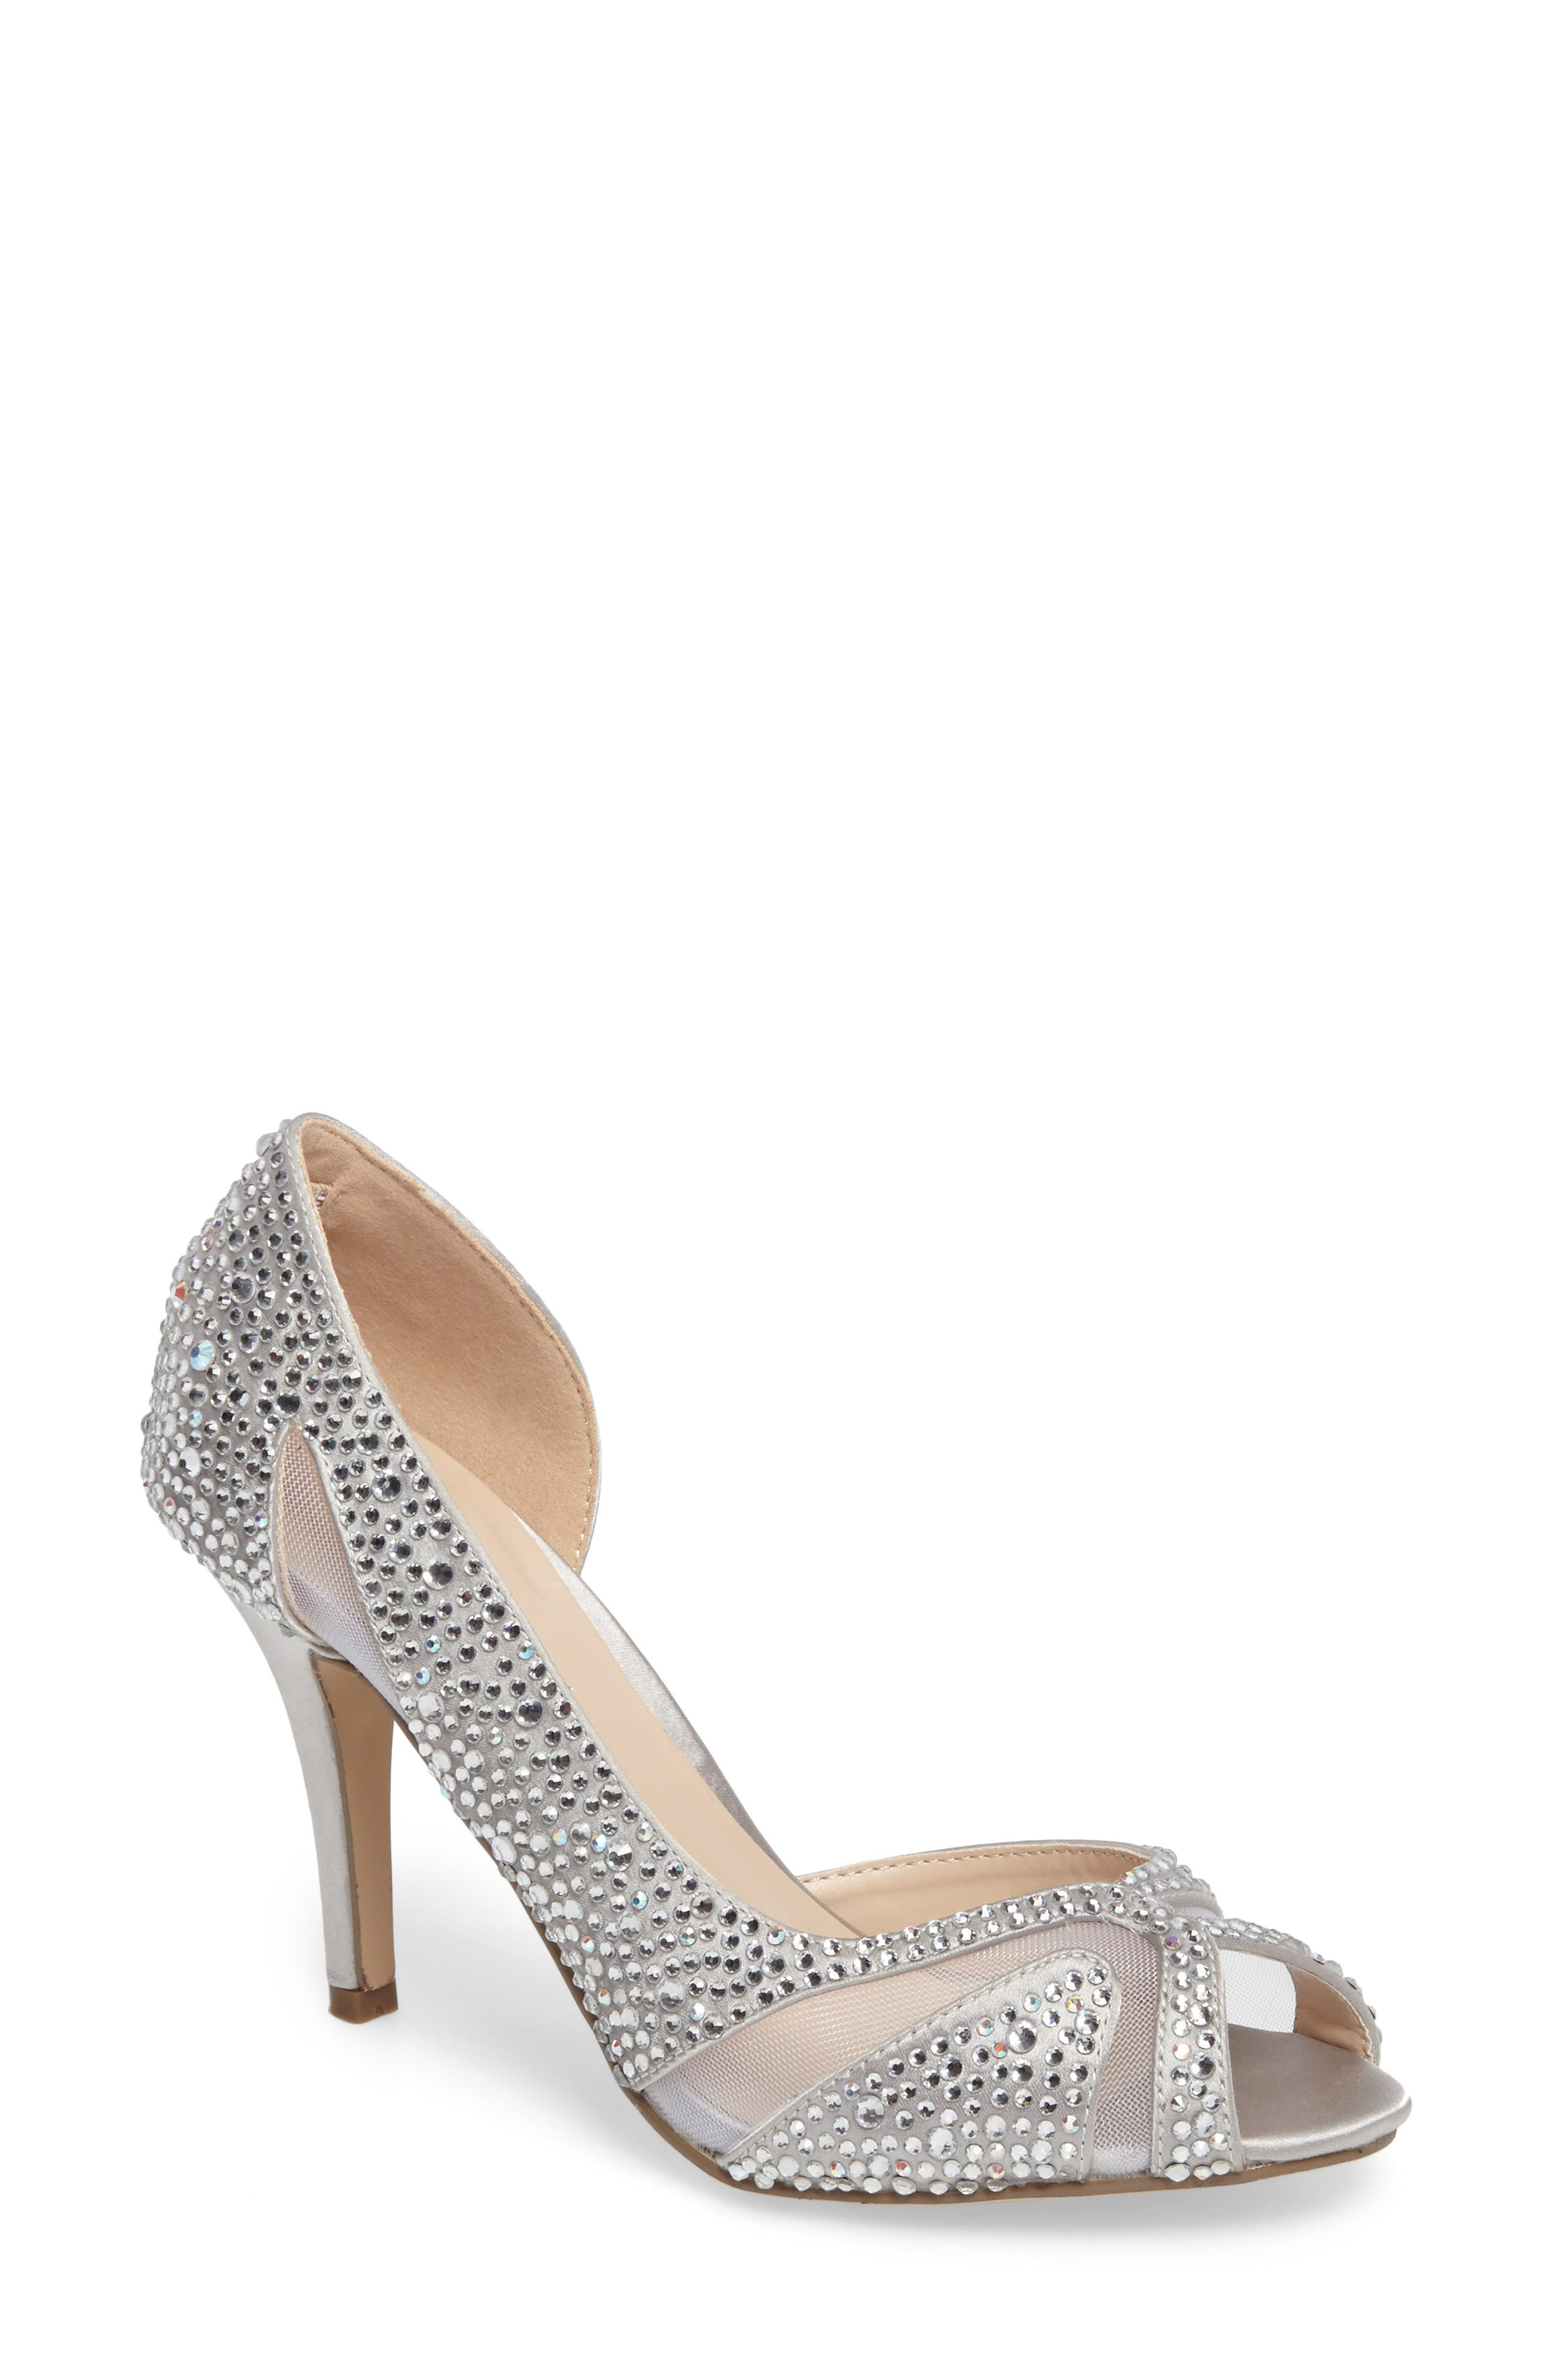 Main Image - pink paradox london Catrina d'Orsay Pump (Women)